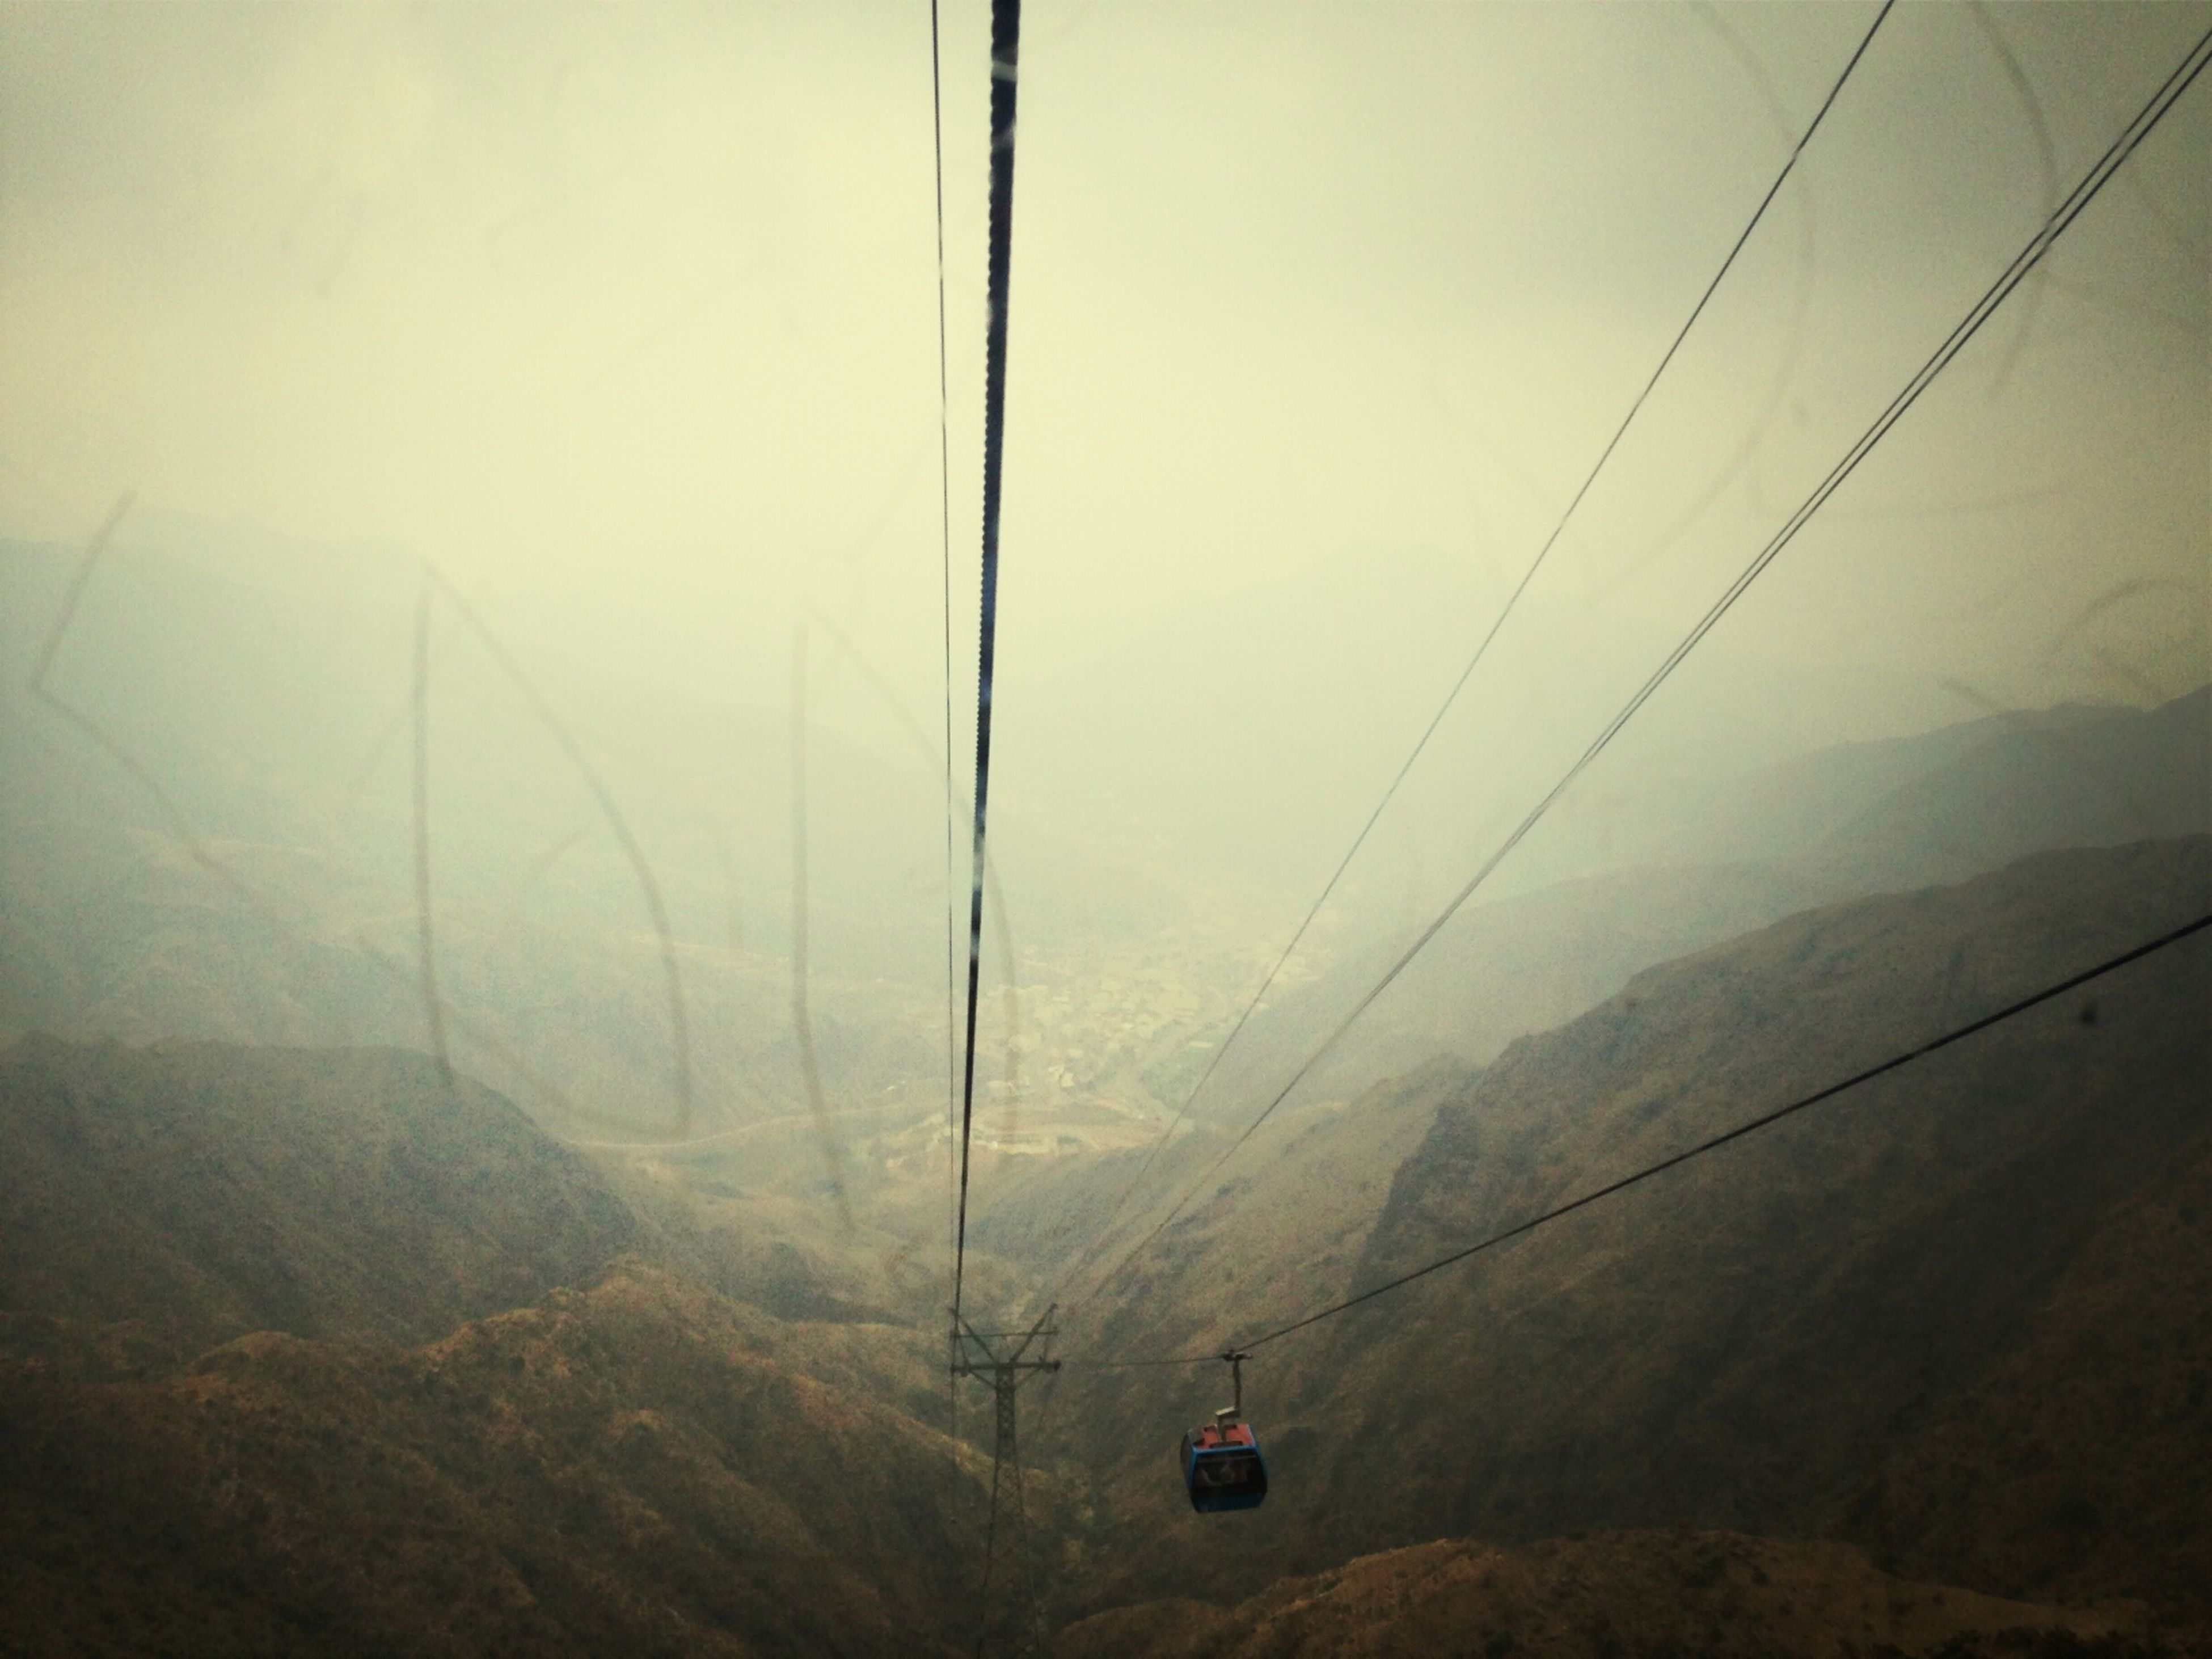 transportation, power line, mountain, connection, electricity pylon, electricity, cable, sky, overhead cable car, tranquility, power supply, fog, tranquil scene, mode of transport, scenics, nature, landscape, beauty in nature, fuel and power generation, technology